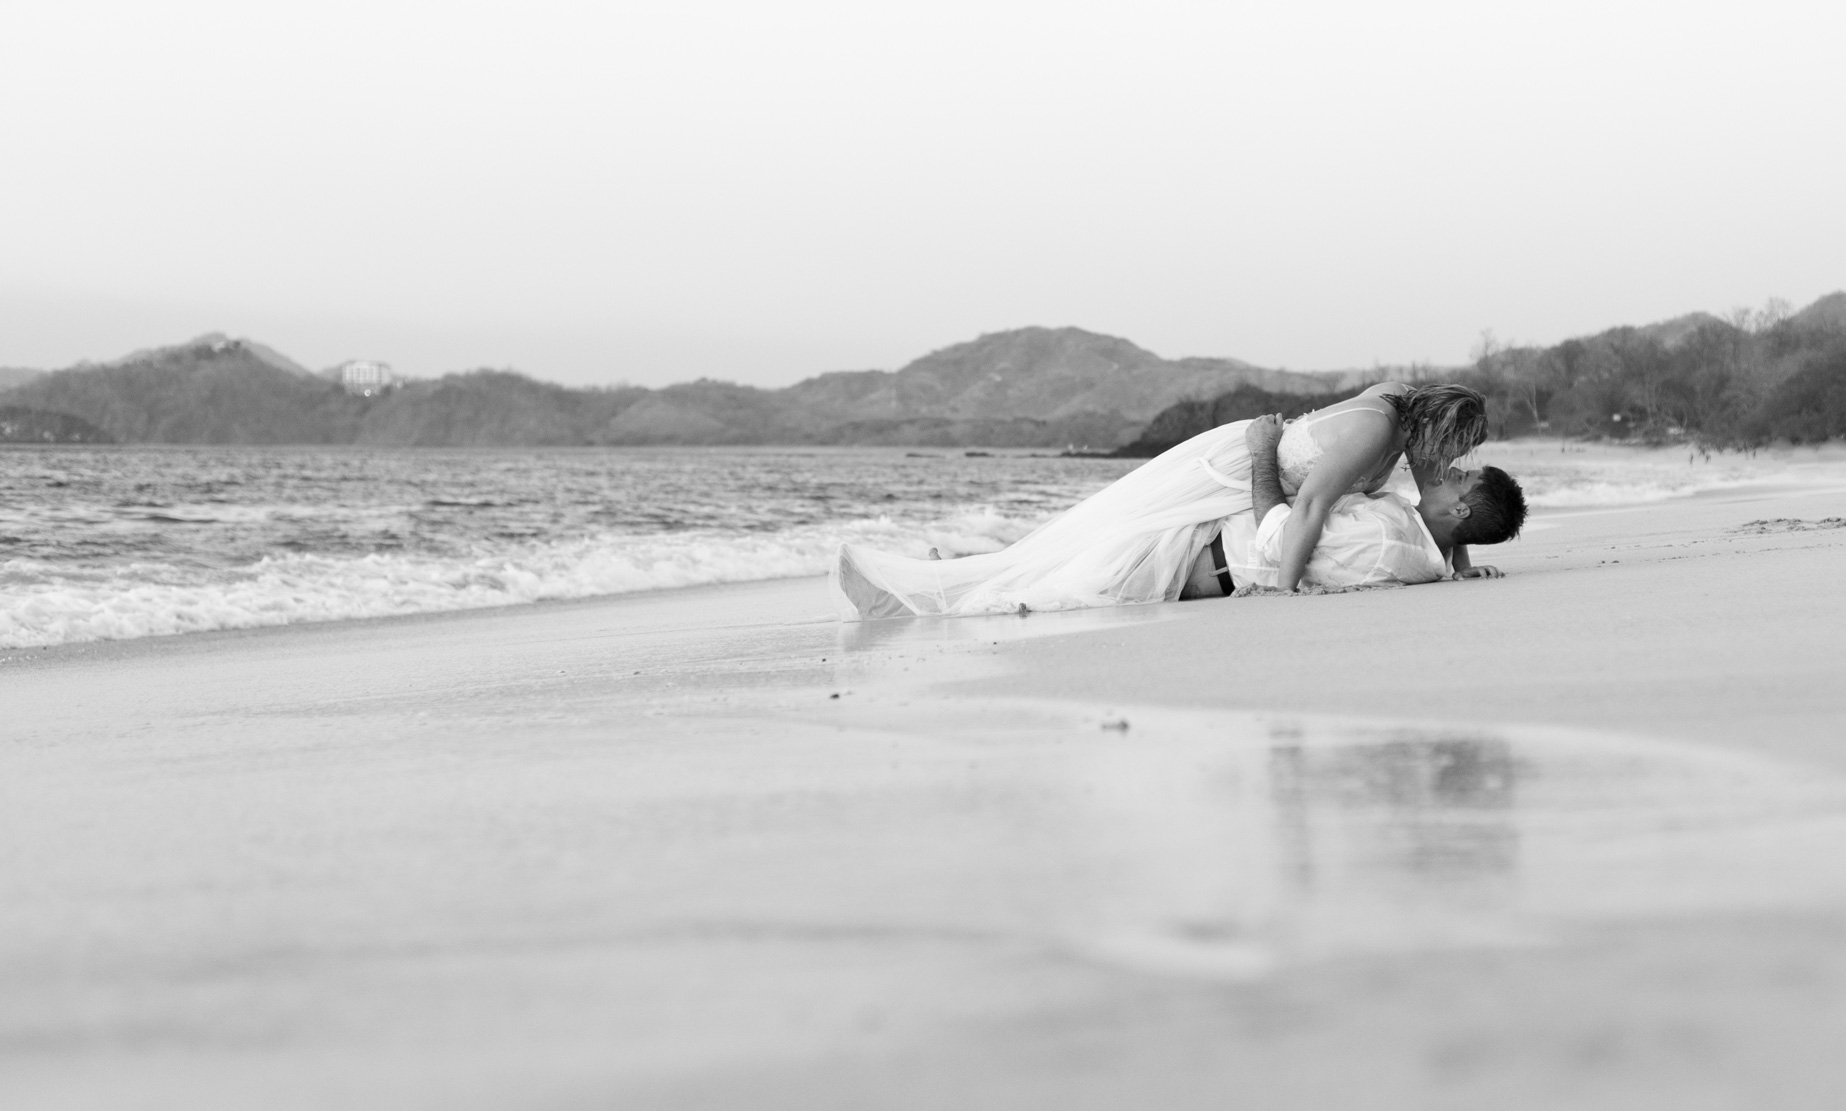 Bride and groom on their Honeymoon at The Westin in Playa Conchal, Costa Rica. Photographed by Kristen M. Brown, Samba to the Sea Photography.